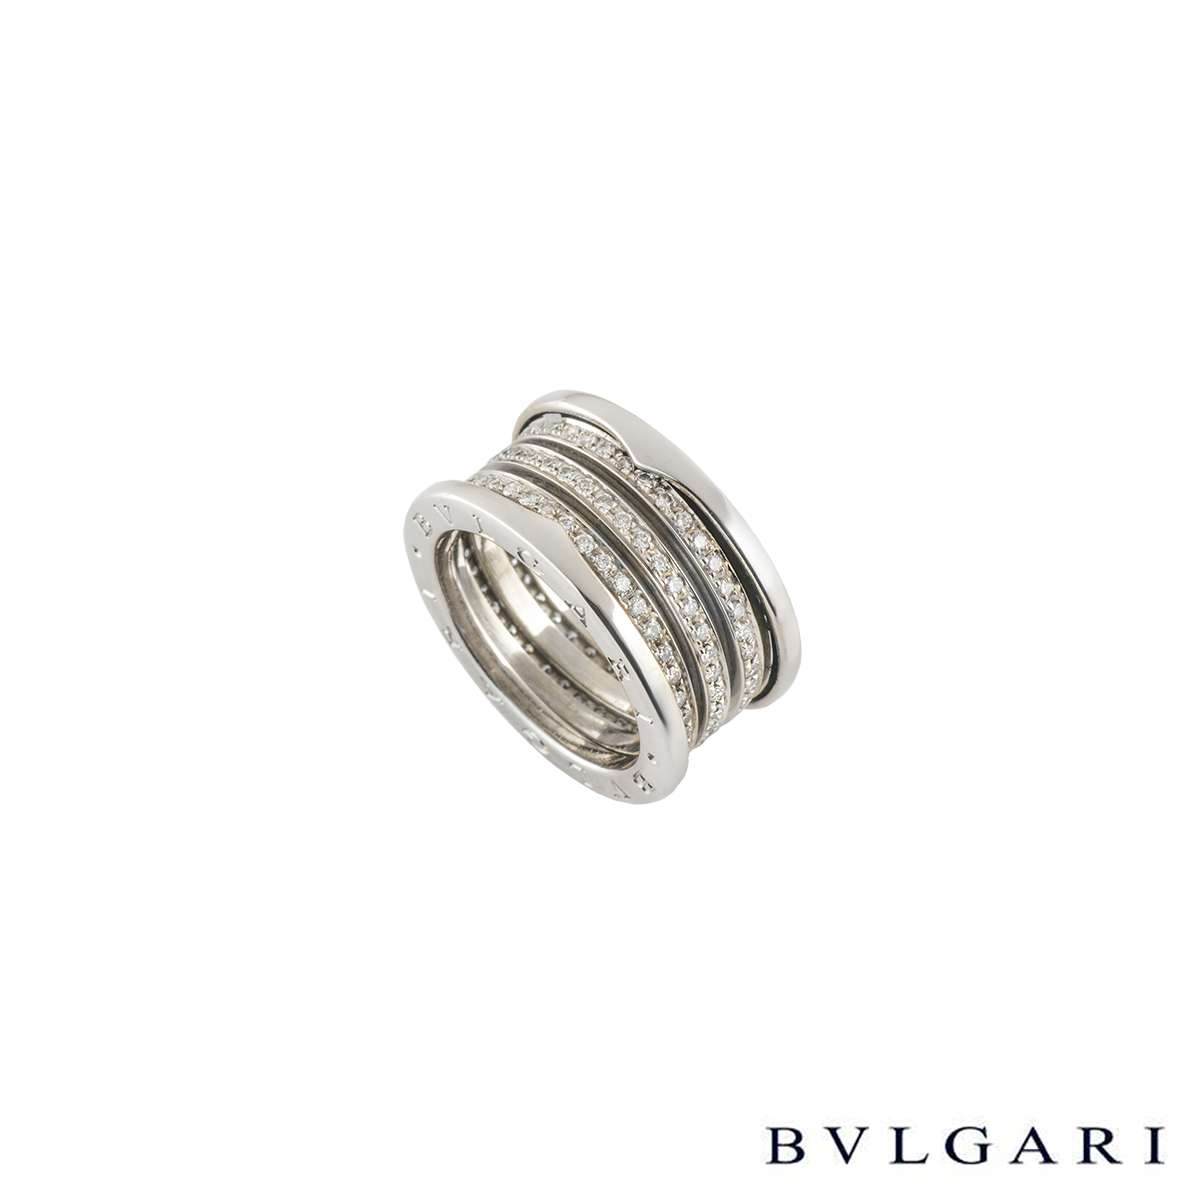 Bvlgari 18k White Gold Diamond Set B.Zero1 Ring AN850560